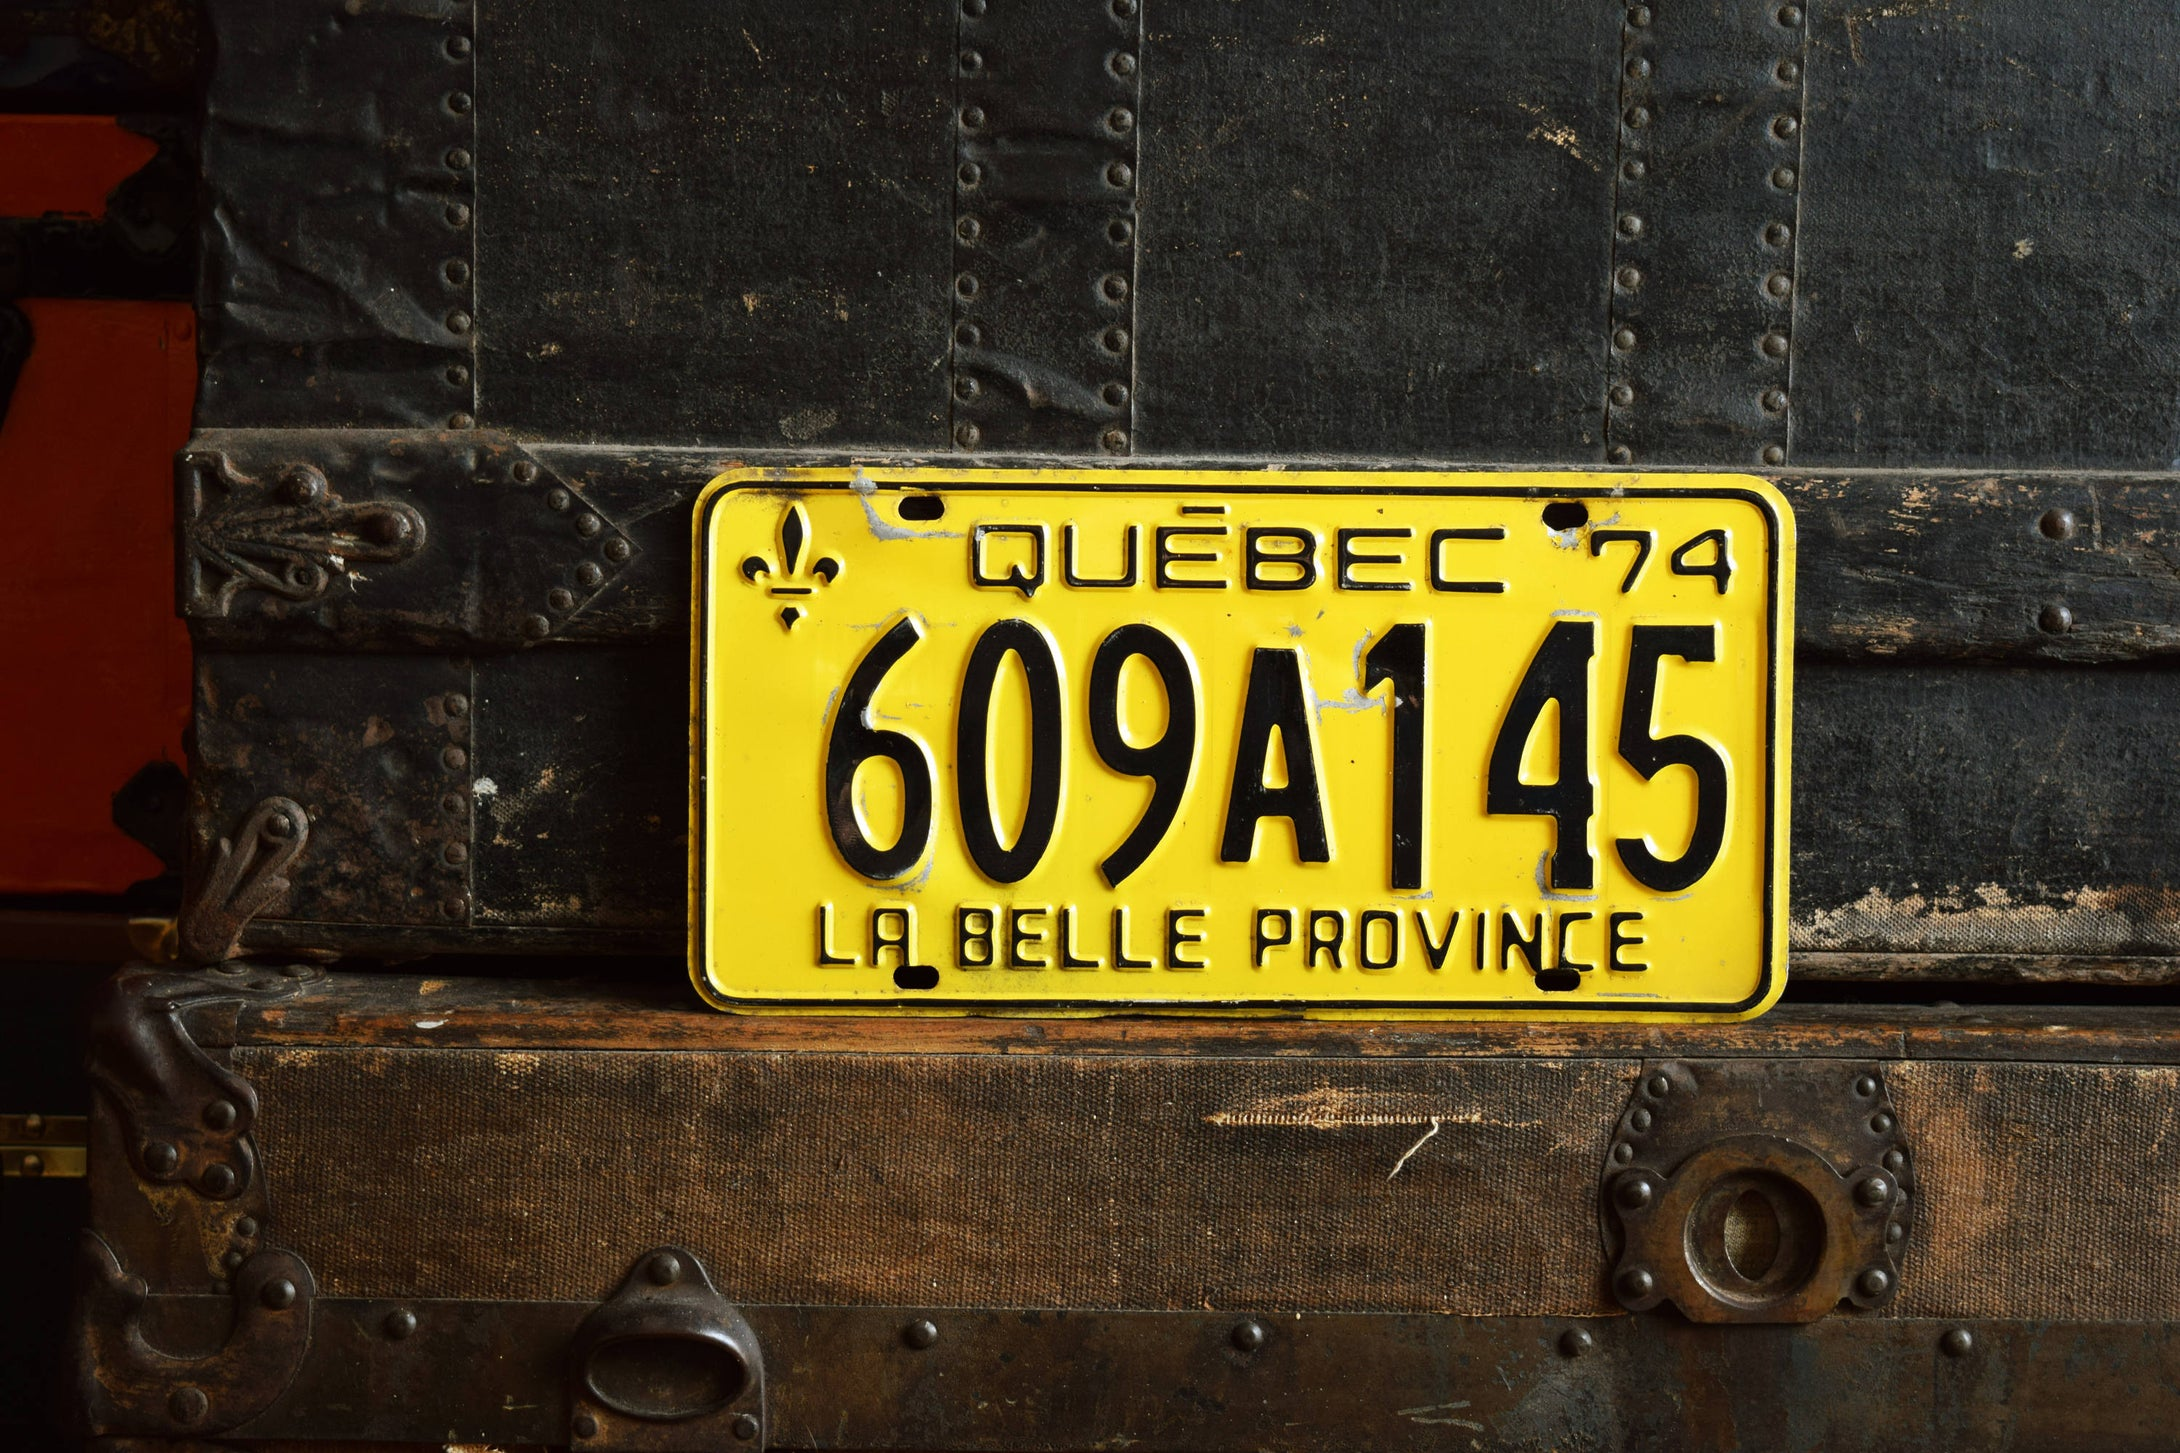 1974 Quebec License Plate - 609A145 - Vintage Automobile ID - Wall Hanging - Industrial Decor -  Canadian Provinces